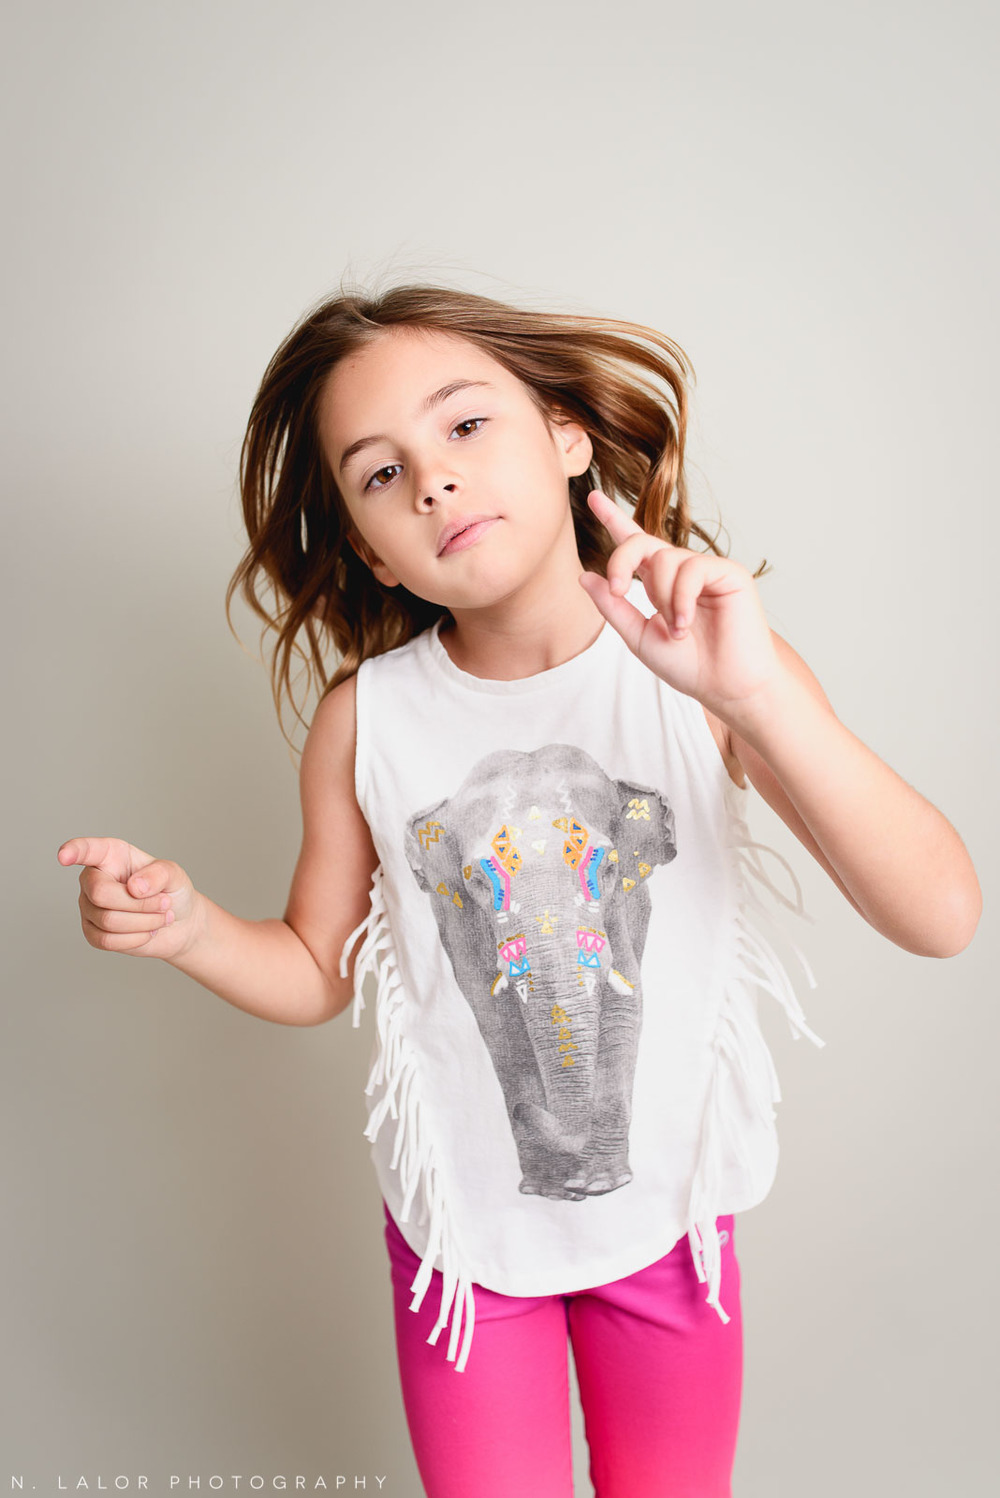 Attitude. Editorial studio portrait of 6-year old girl by N. Lalor Photography in Greenwich, Connecticut.